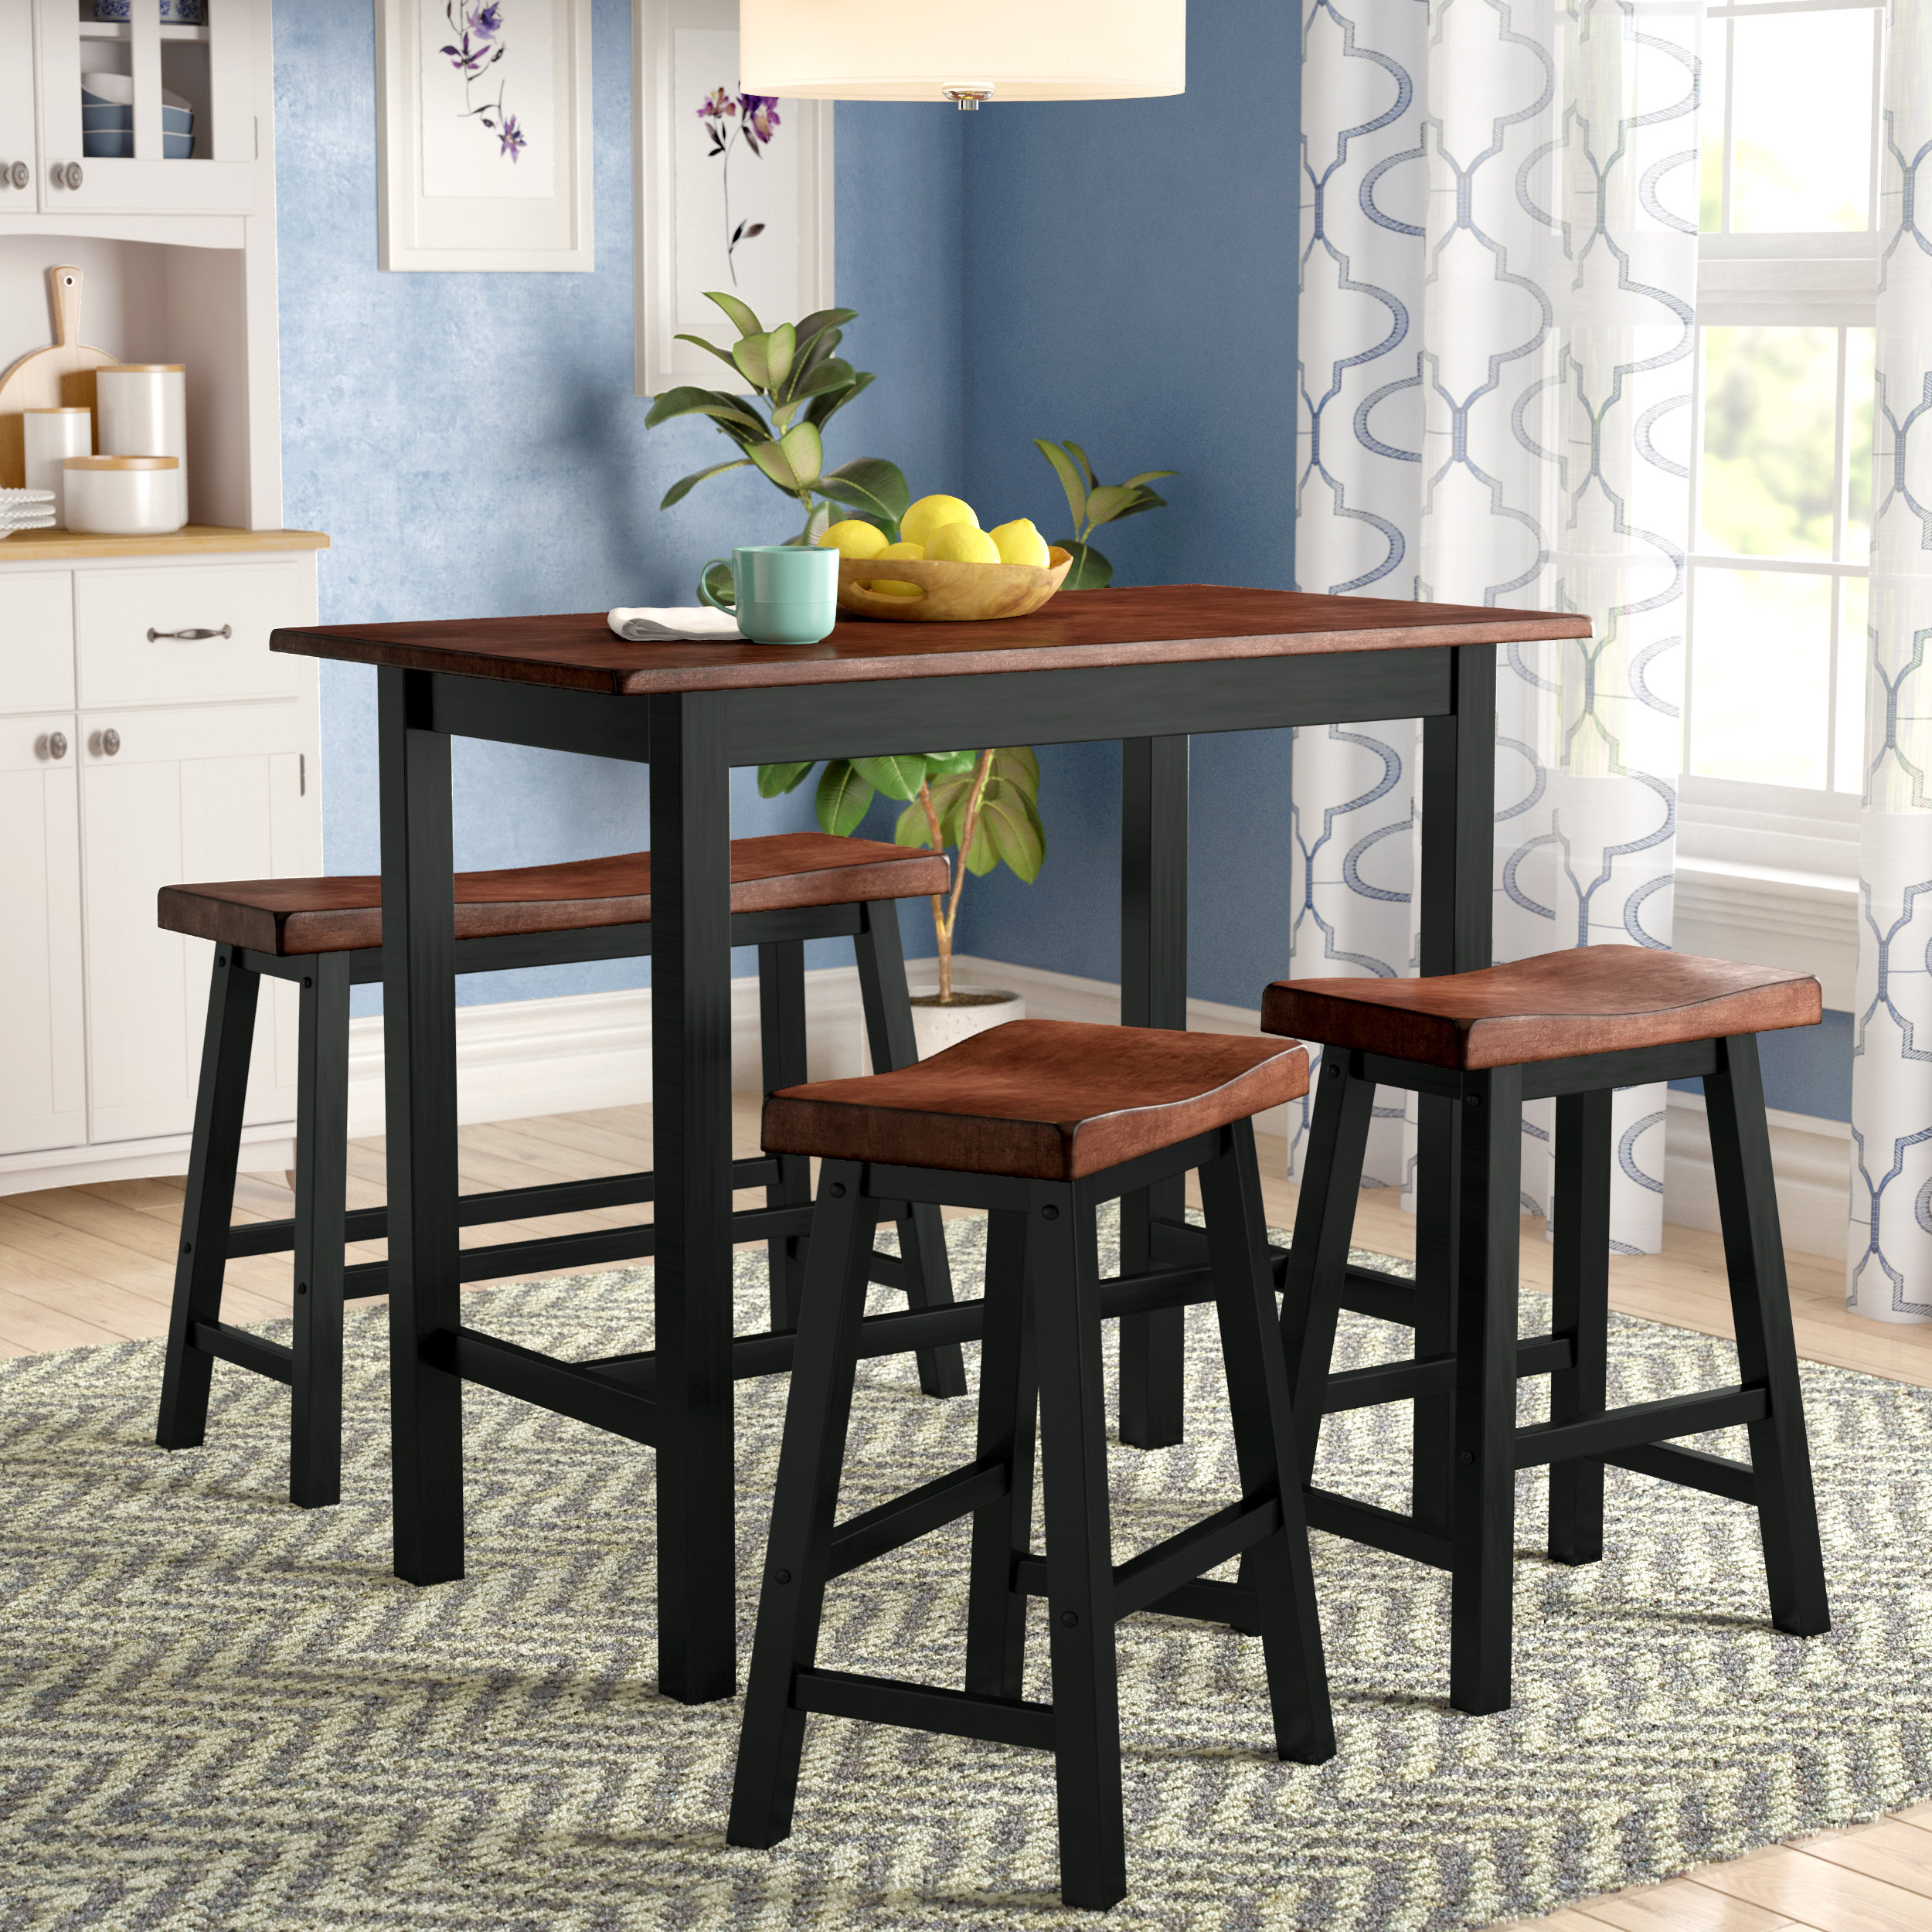 Winsted 4 Piece Counter Height Dining Set With Regard To Recent Mysliwiec 5 Piece Counter Height Breakfast Nook Dining Sets (View 5 of 20)